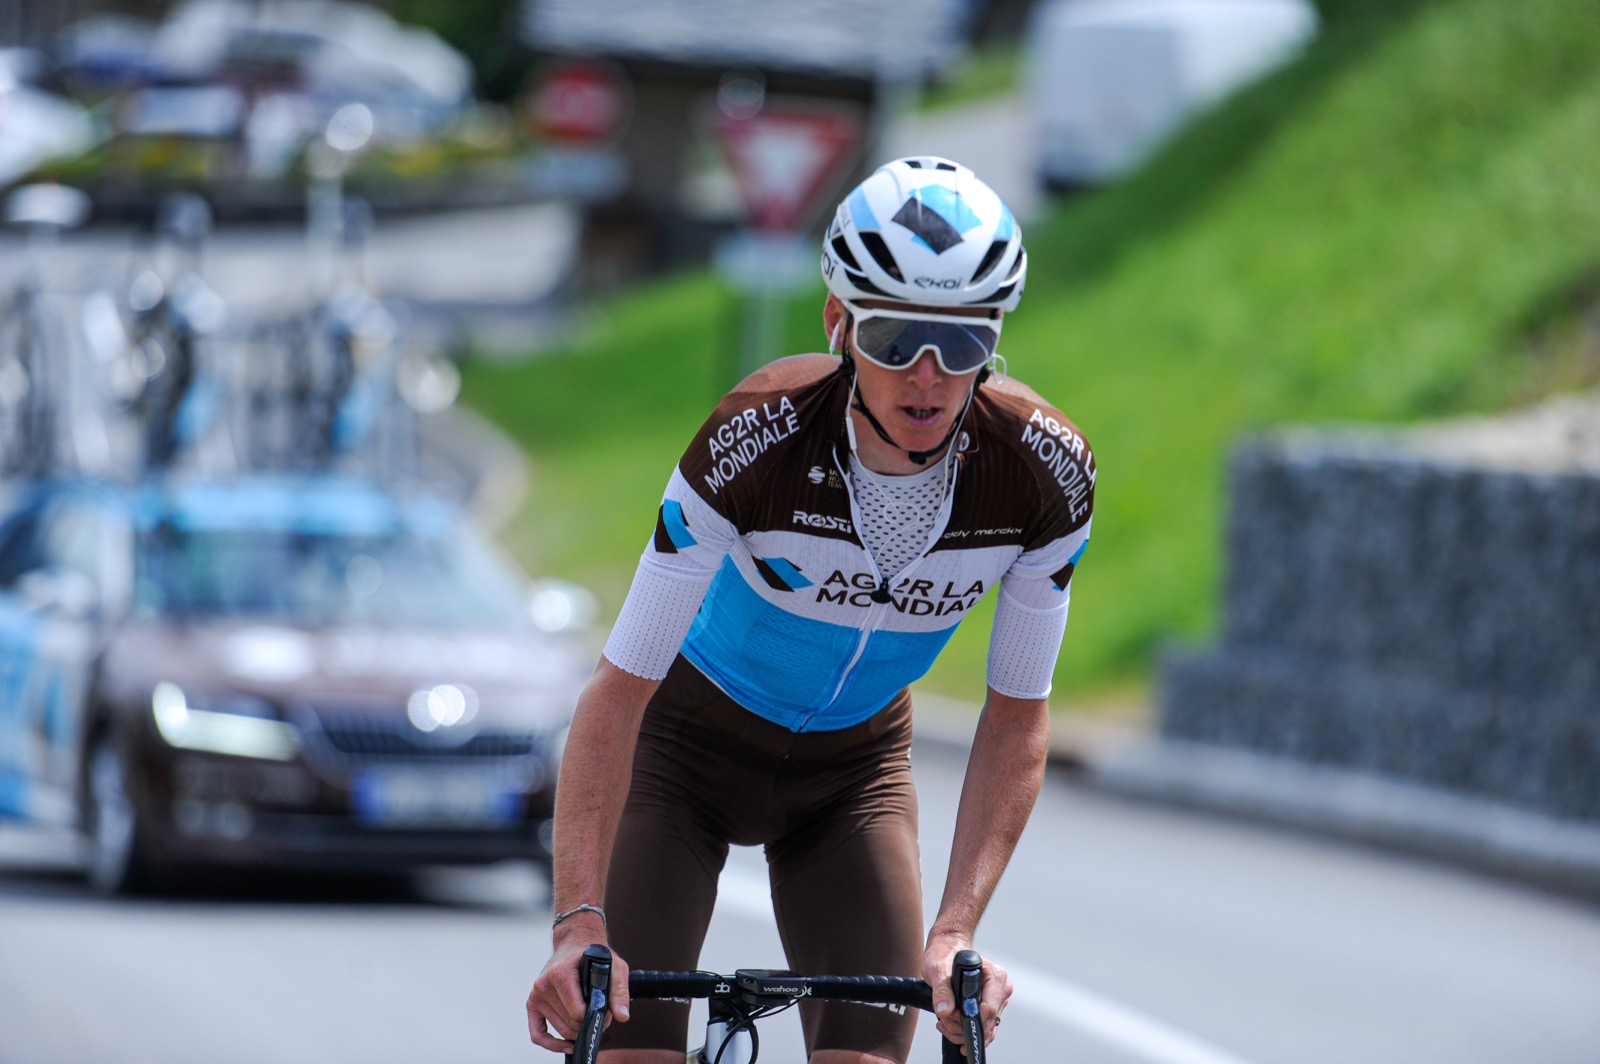 BOLLÉ SUPPORTS AG2R LA MONDIALE AT UPCOMING TOUR DE FRANCE WITH ITS LATEST CHRONOSHIELD SUNGLASSES